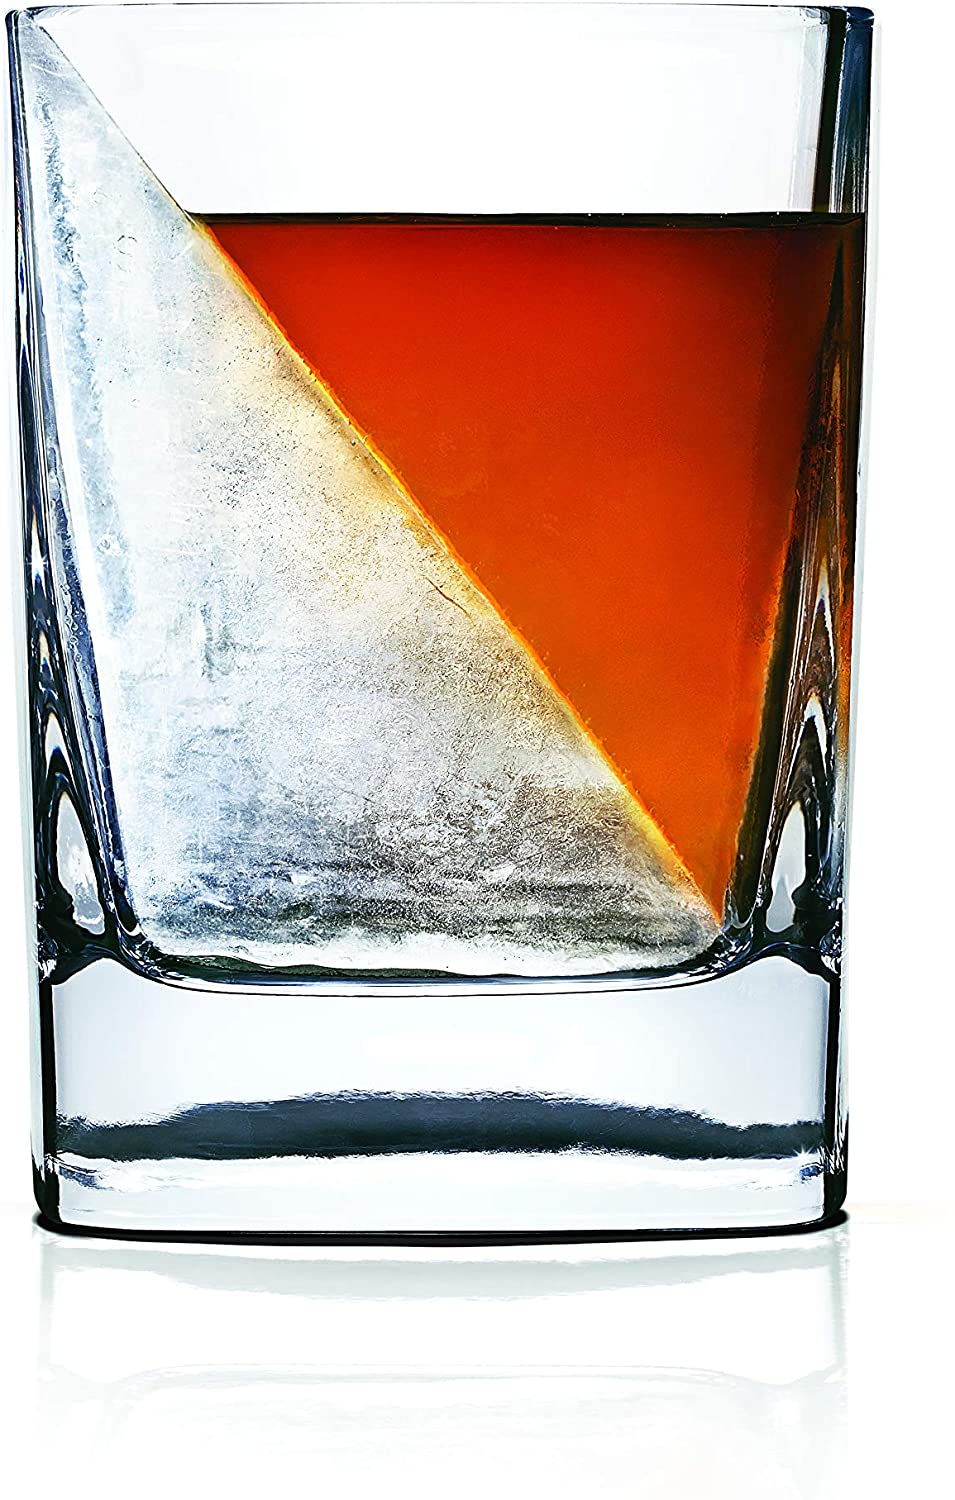 2Pcs//Set Whiskey Wedge Iced Whisky Glass Cup Mug With Silicone Ice Cube Mould